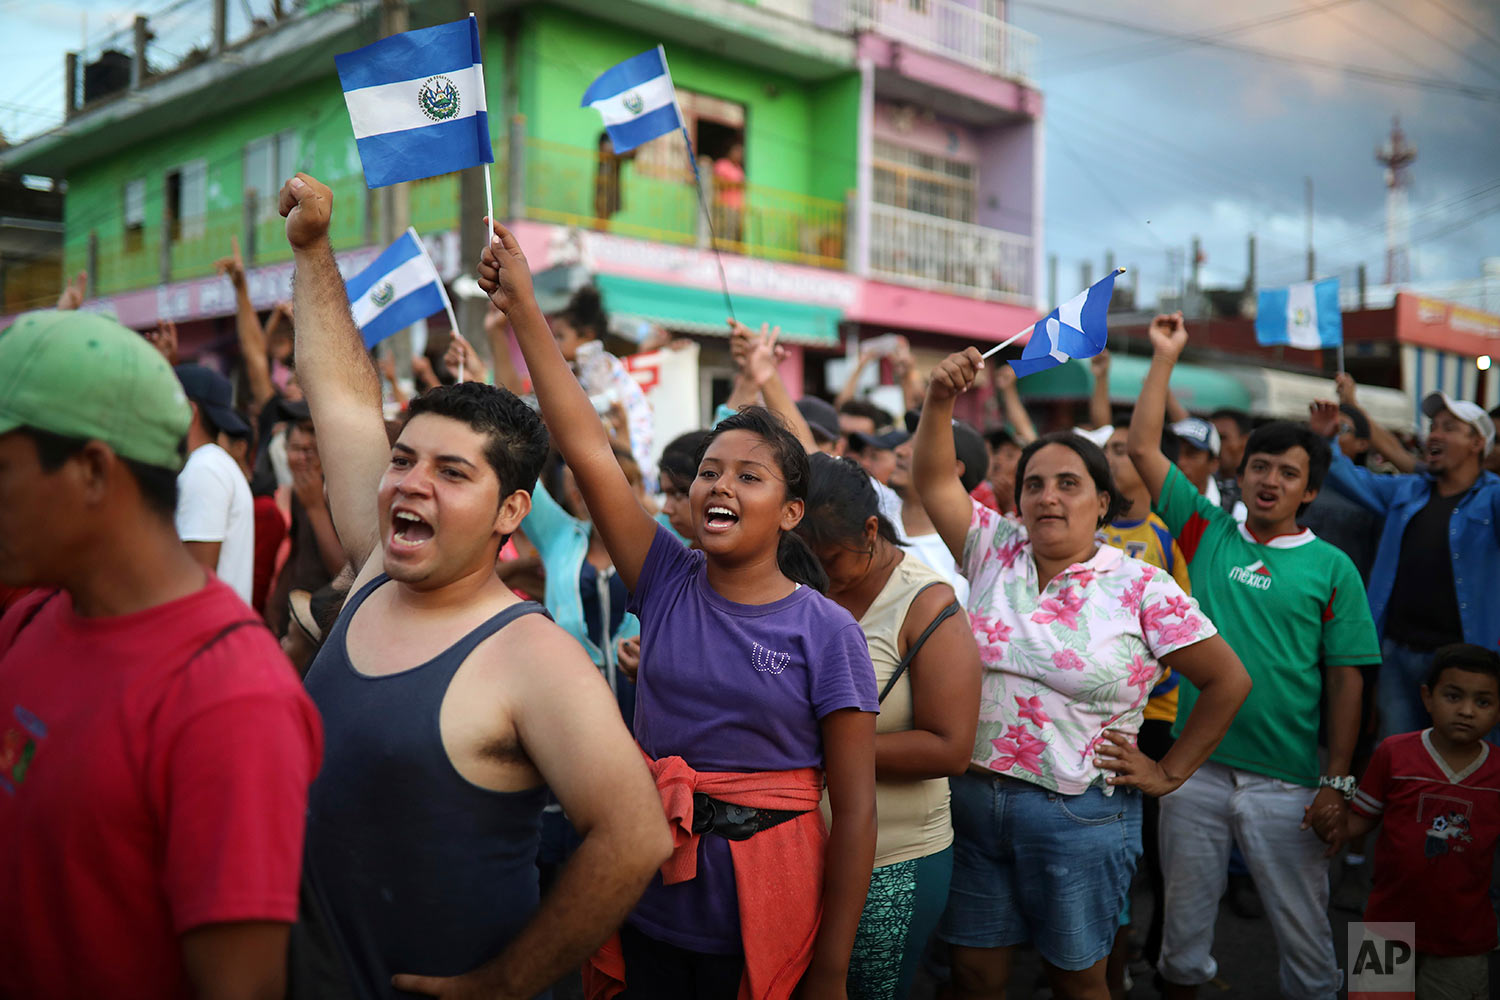 Central American migrants traveling with the annual Stations of the Cross caravan march to call for migrants' rights and protest the policies of U.S. President Donald Trump and Honduran President Juan Orlando Hernandez, in Matias Romero, Oaxaca State, Mexico, Tuesday, April 3, 2018. (AP Photo/Felix Marquez)